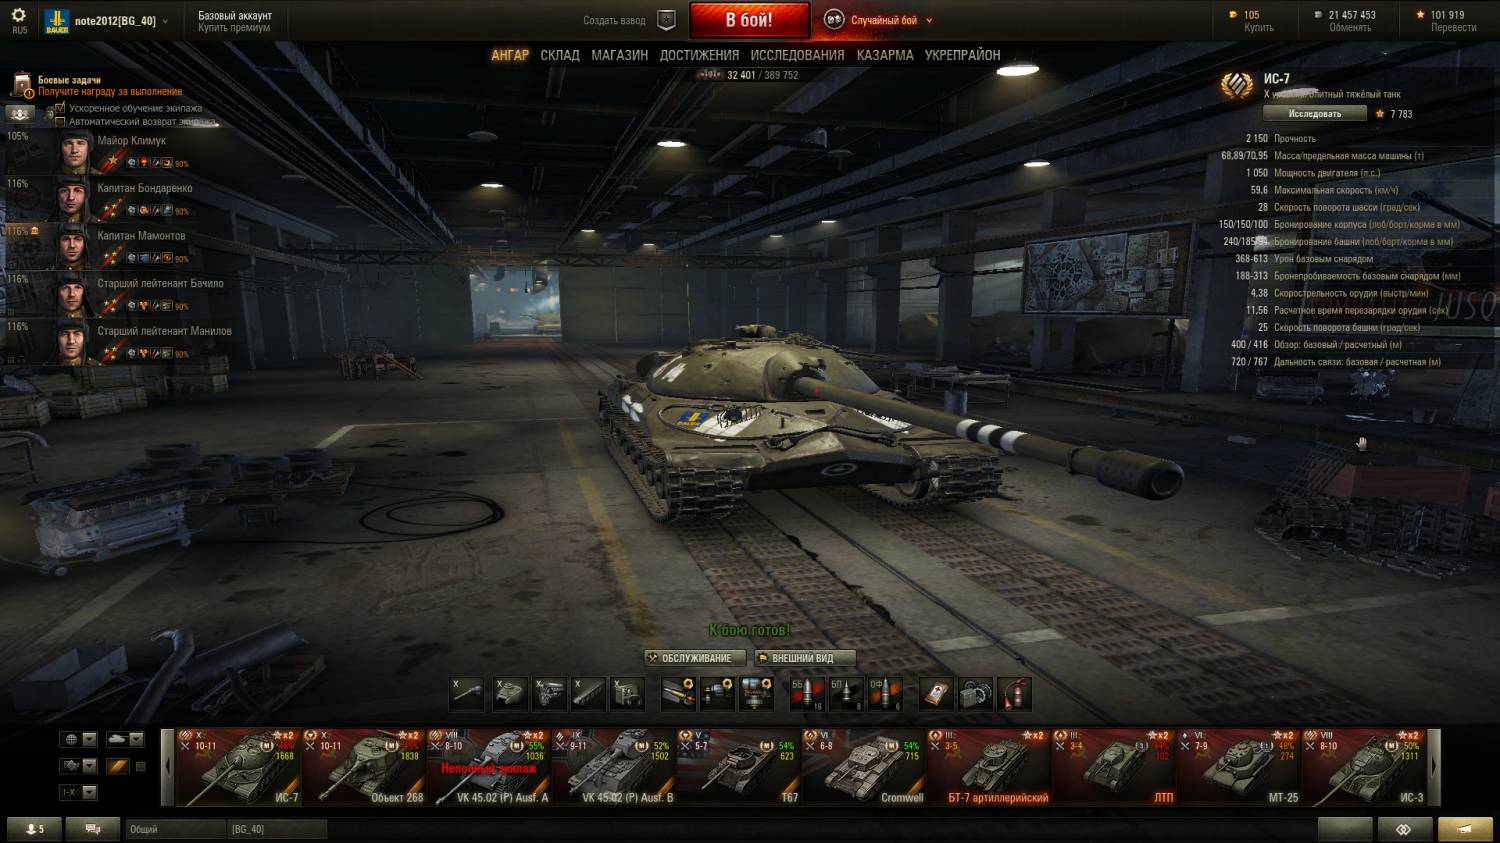 Названия папок в world of tanks